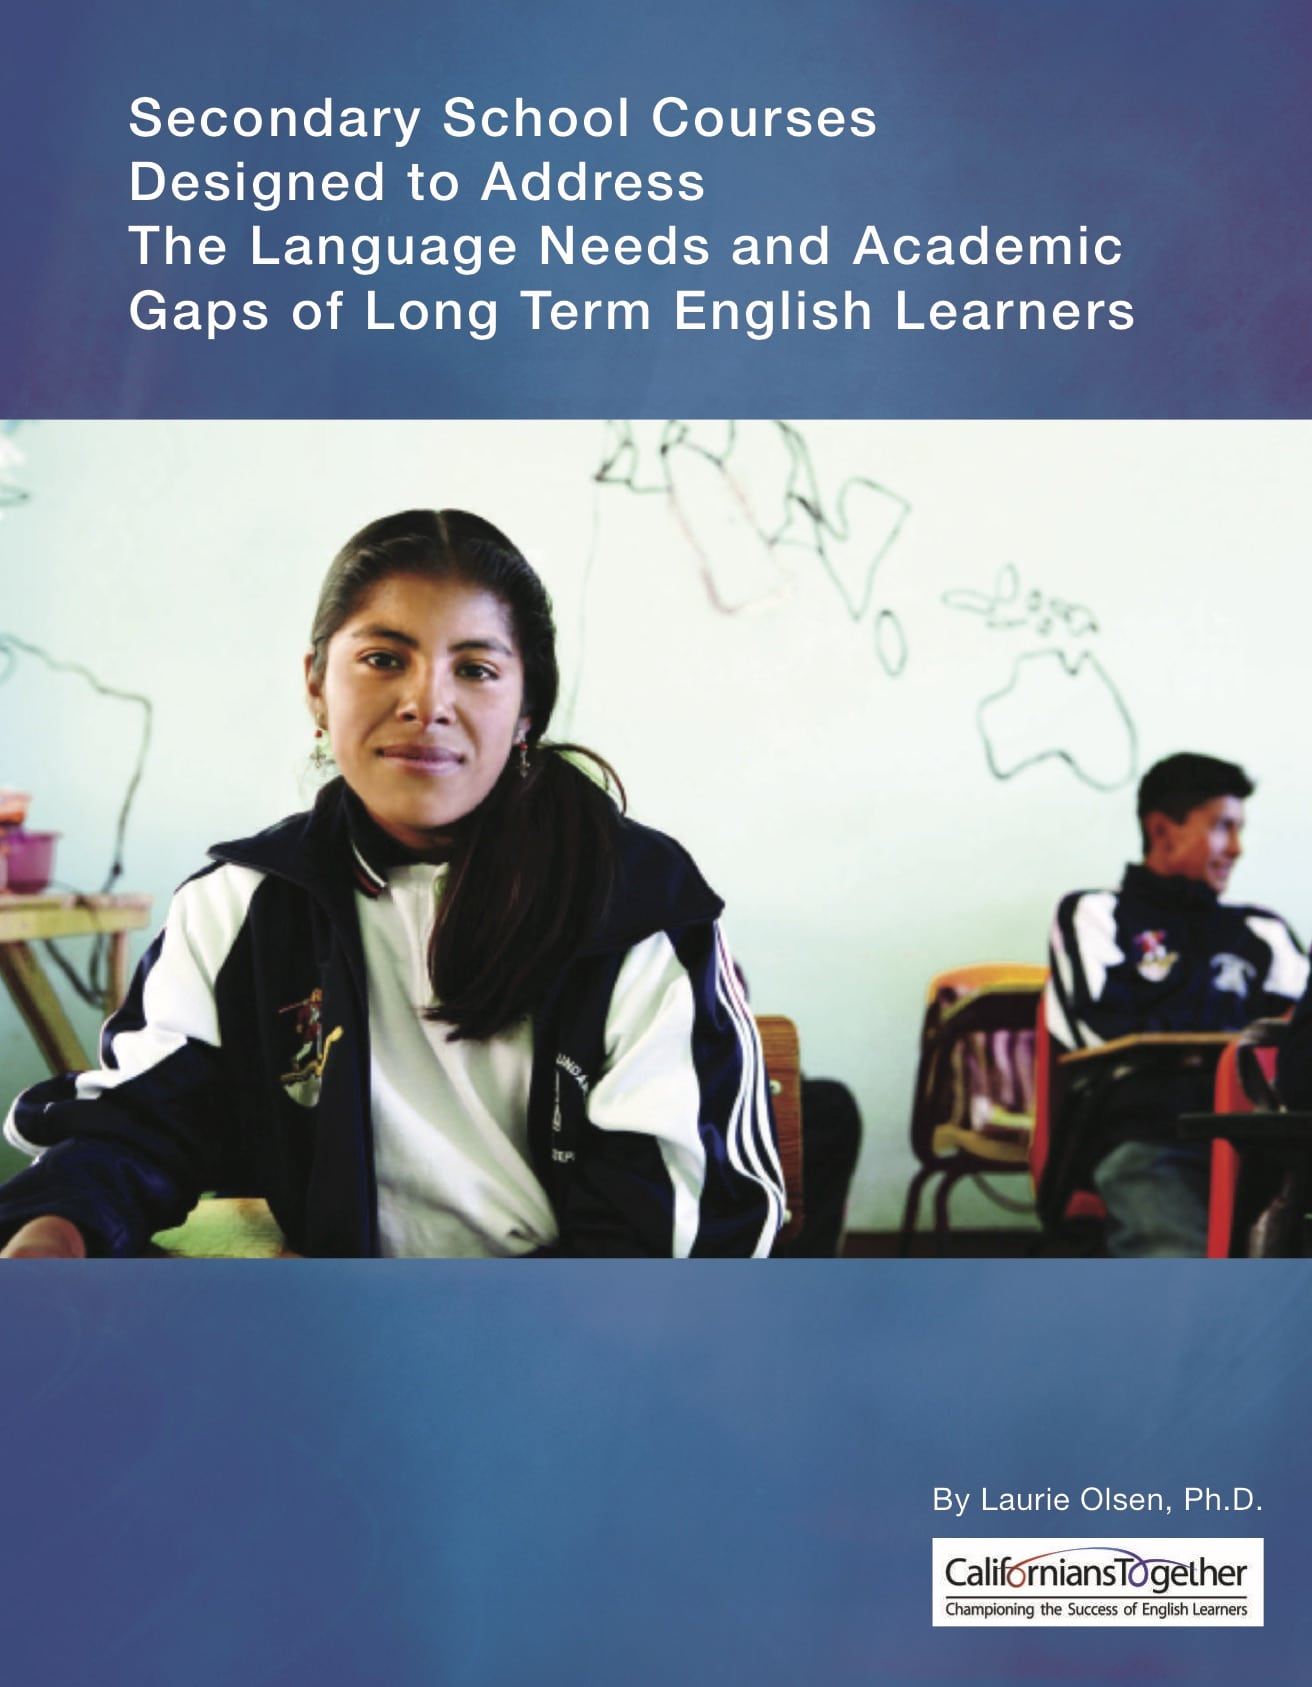 Secondary school courses designed to address the language needs and academic gaps of Long Term English Learners